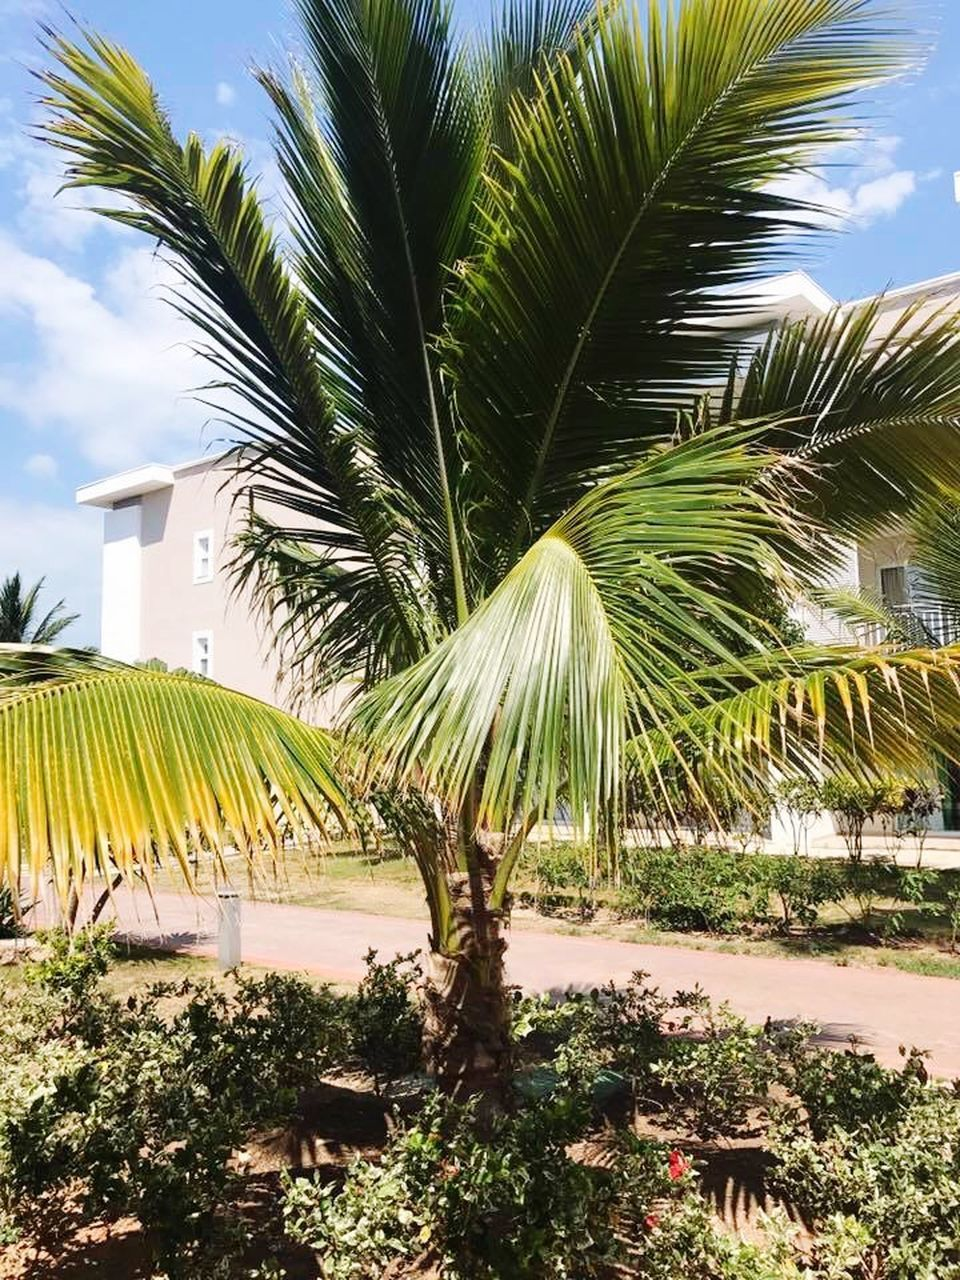 PALM TREES BY PLANTS